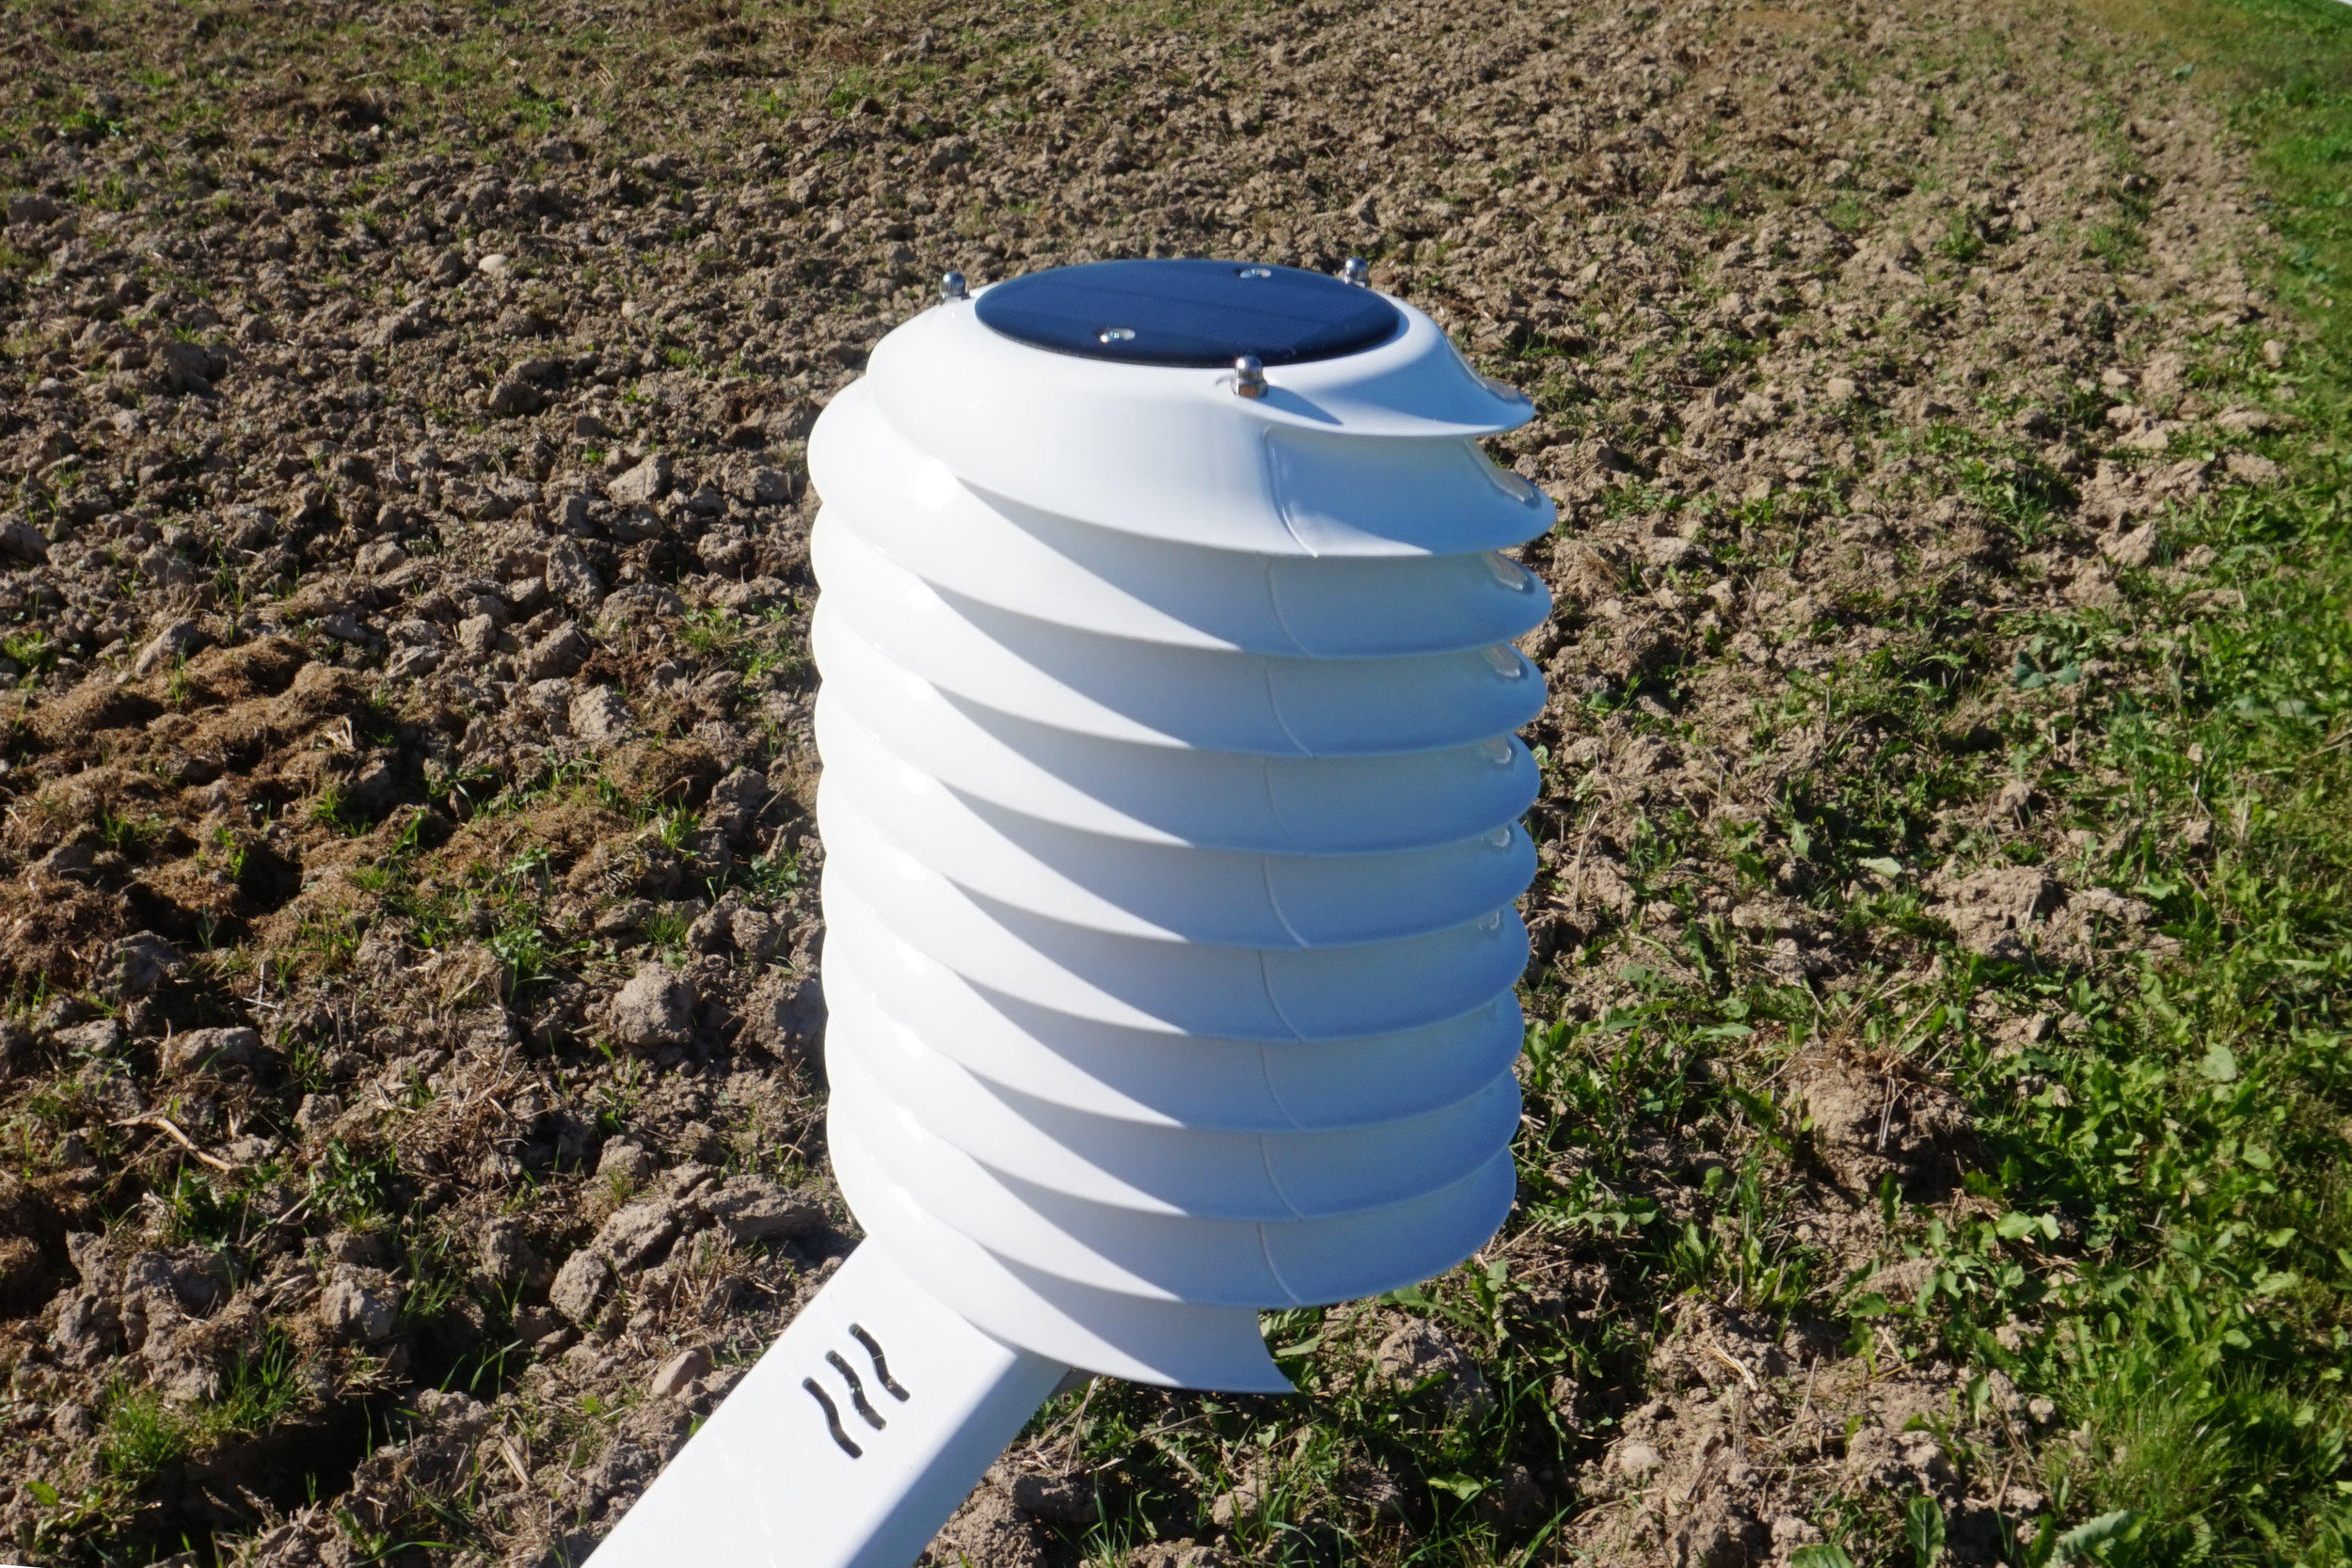 MeteoHelix IoT Pro LoRaWAN agricultural weather station in a farm field